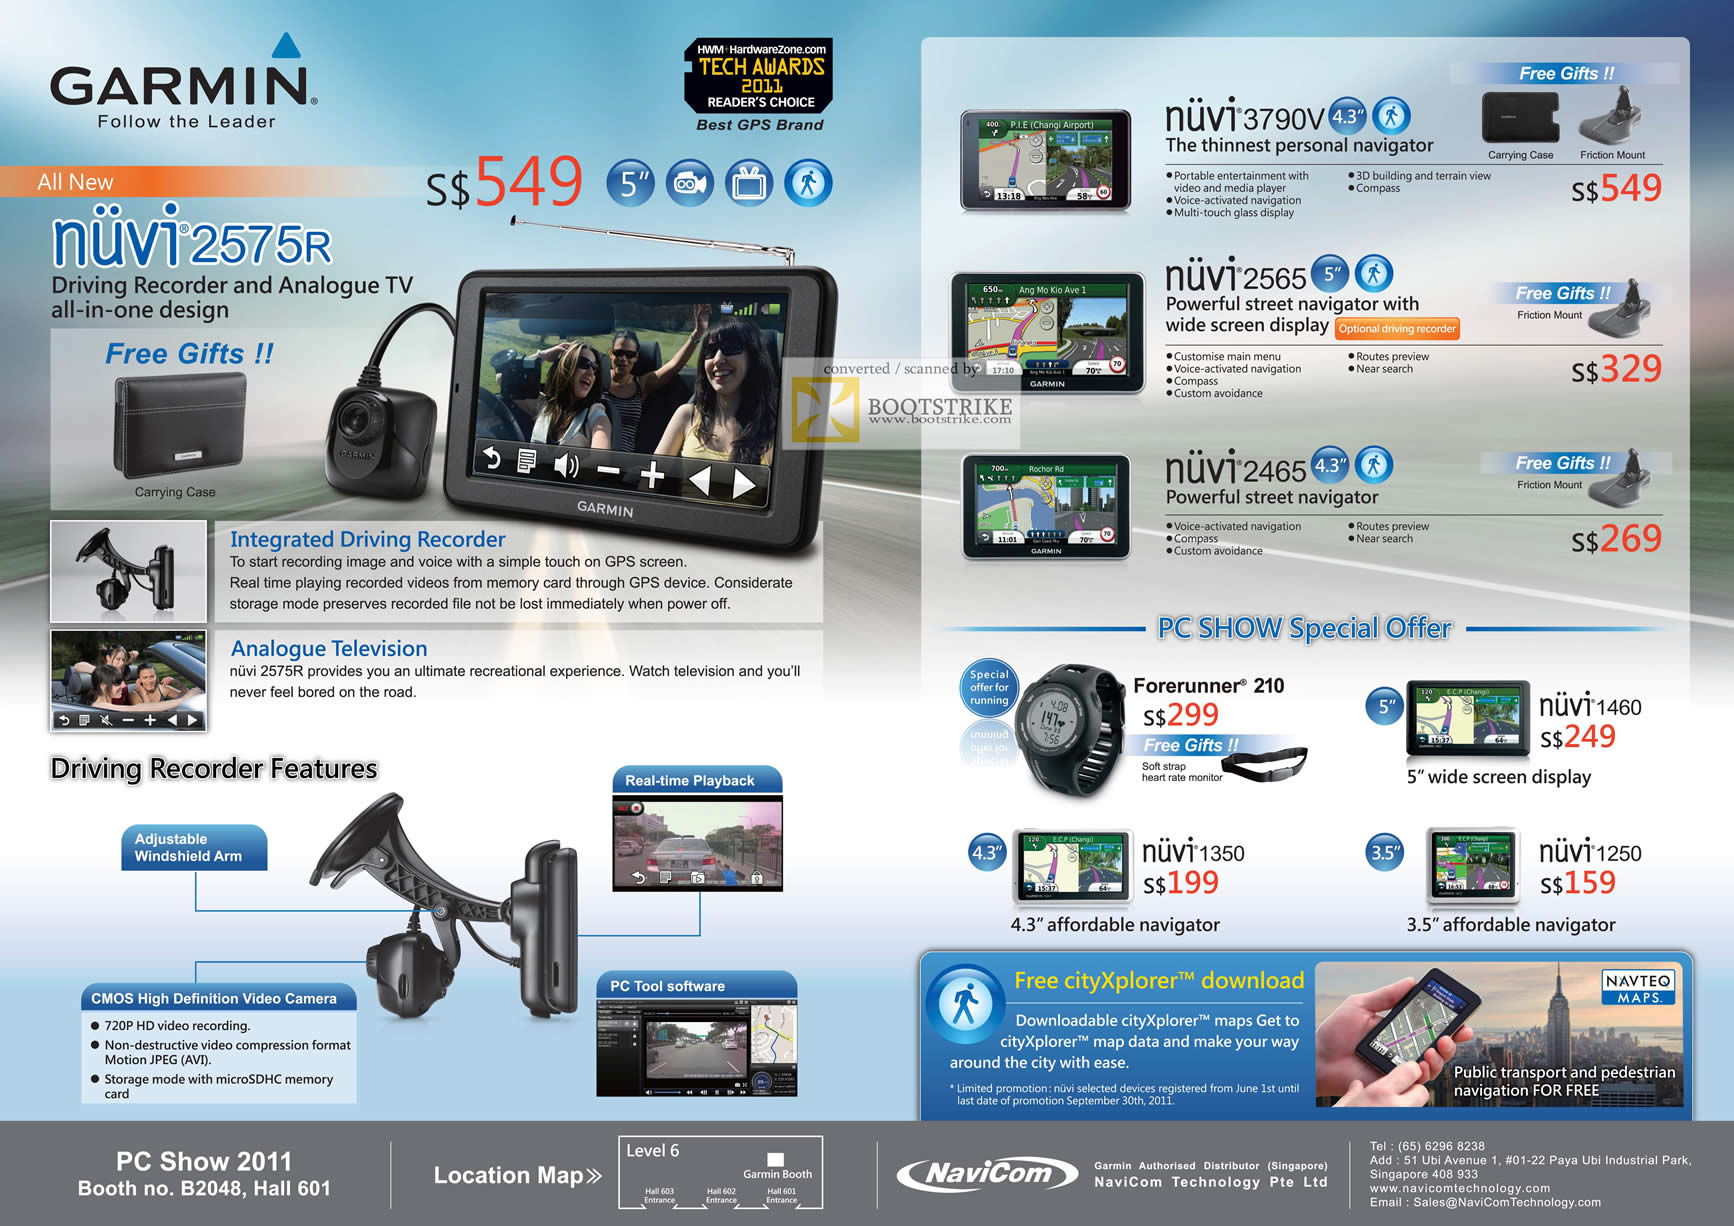 PC Show 2011 price list image brochure of Navicom Garmin GPS Navigation Nuvi 2575R TV 3790V 2565 2465 1350 1460 1250 Forerunner 210